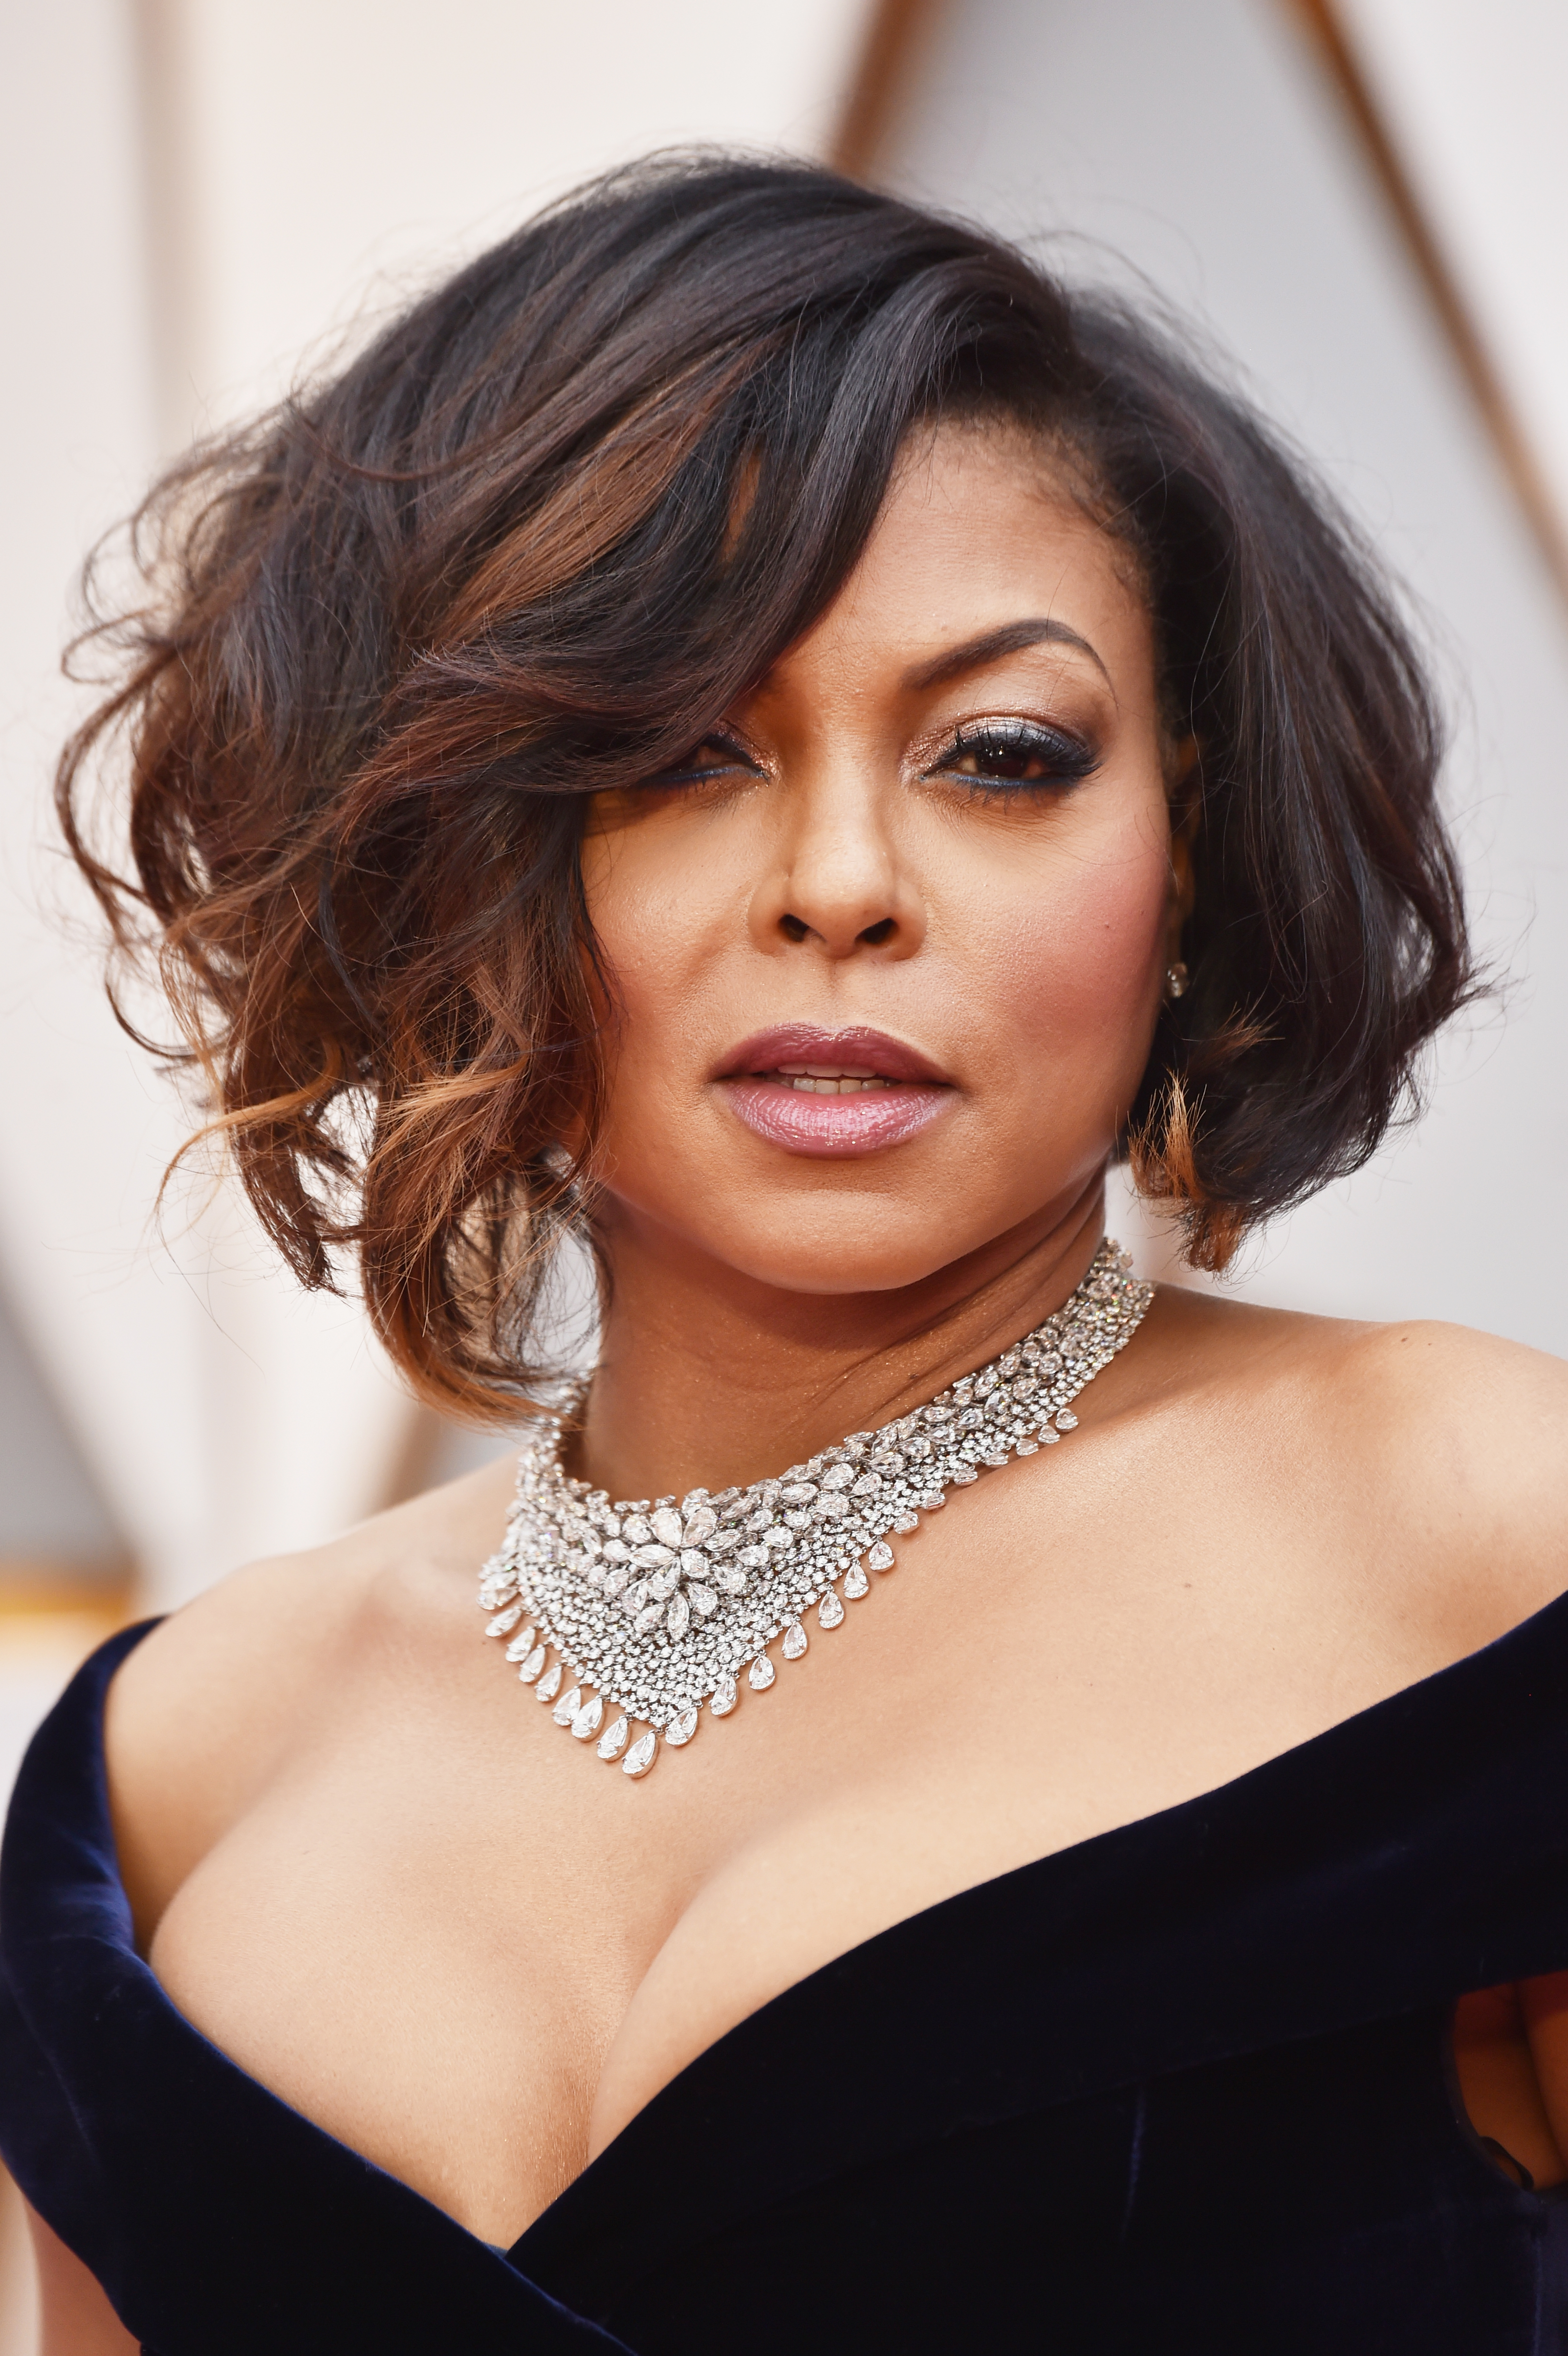 Actor Taraji P. Henson attends the 89th Annual Academy Awards at Hollywood & Highland Center on February 26, 2017 in Hollywood, California.